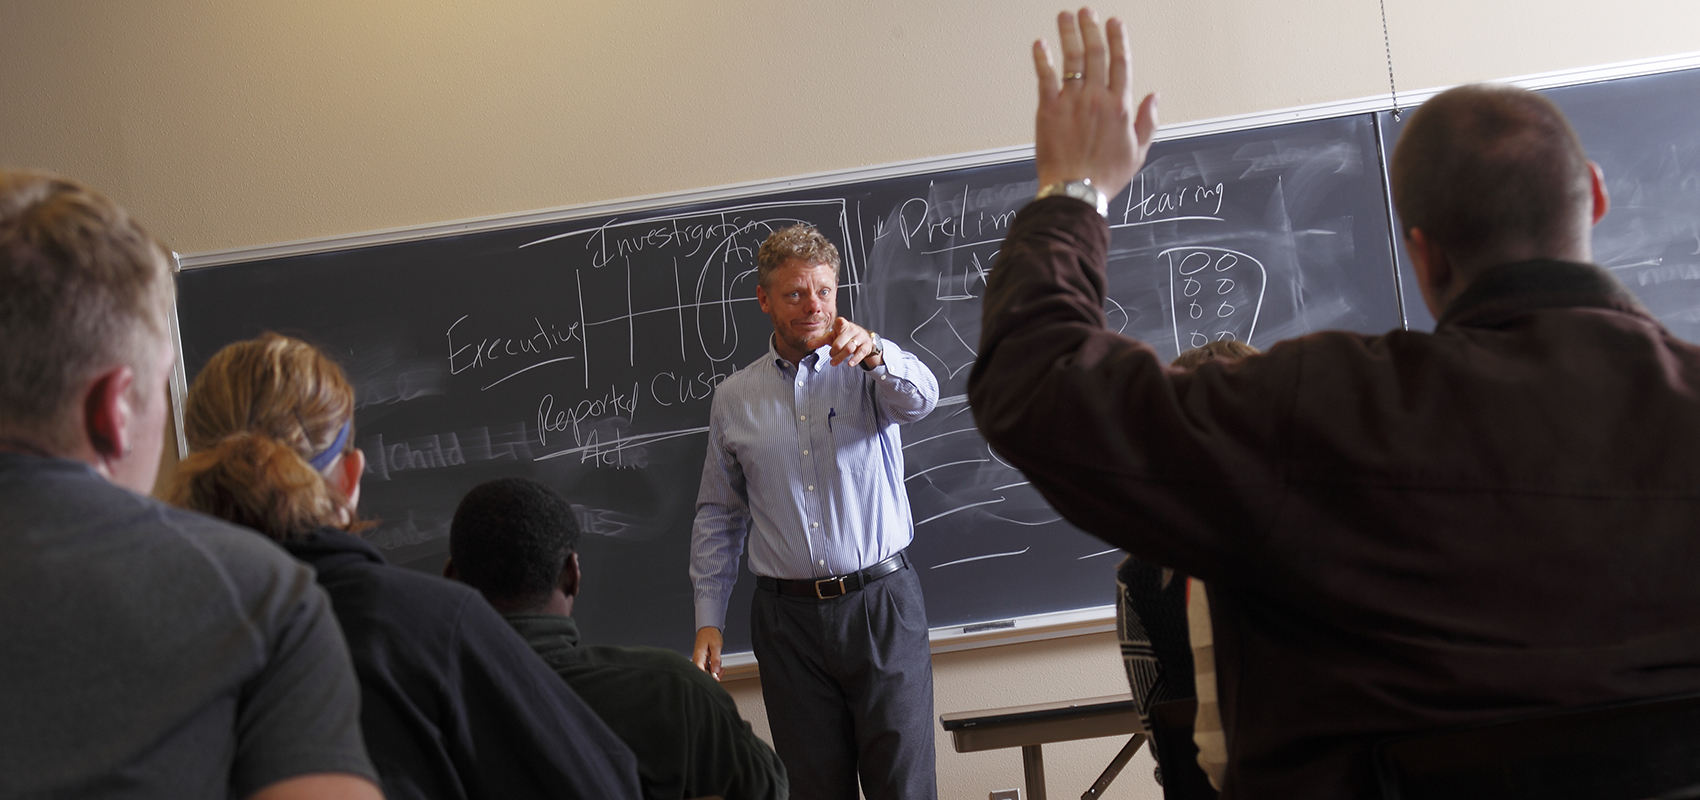 Professor Mike Thompson teaching a class at USF.